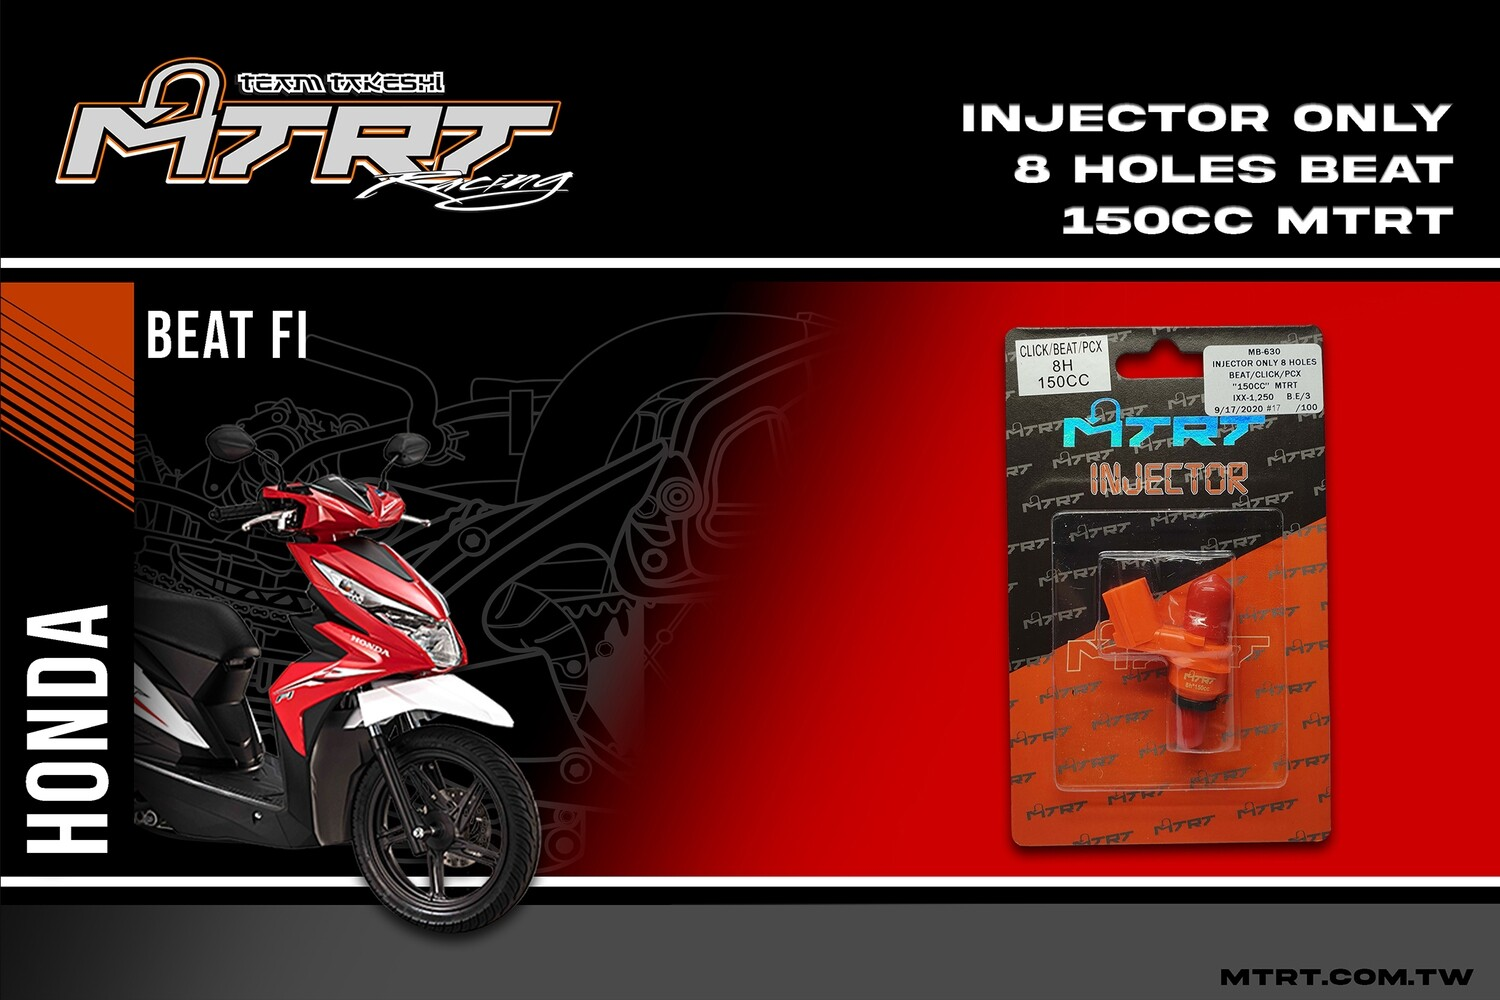 INJECTOR ONLY 8HOLES BEAT CLICK PCX 150CC MTRT